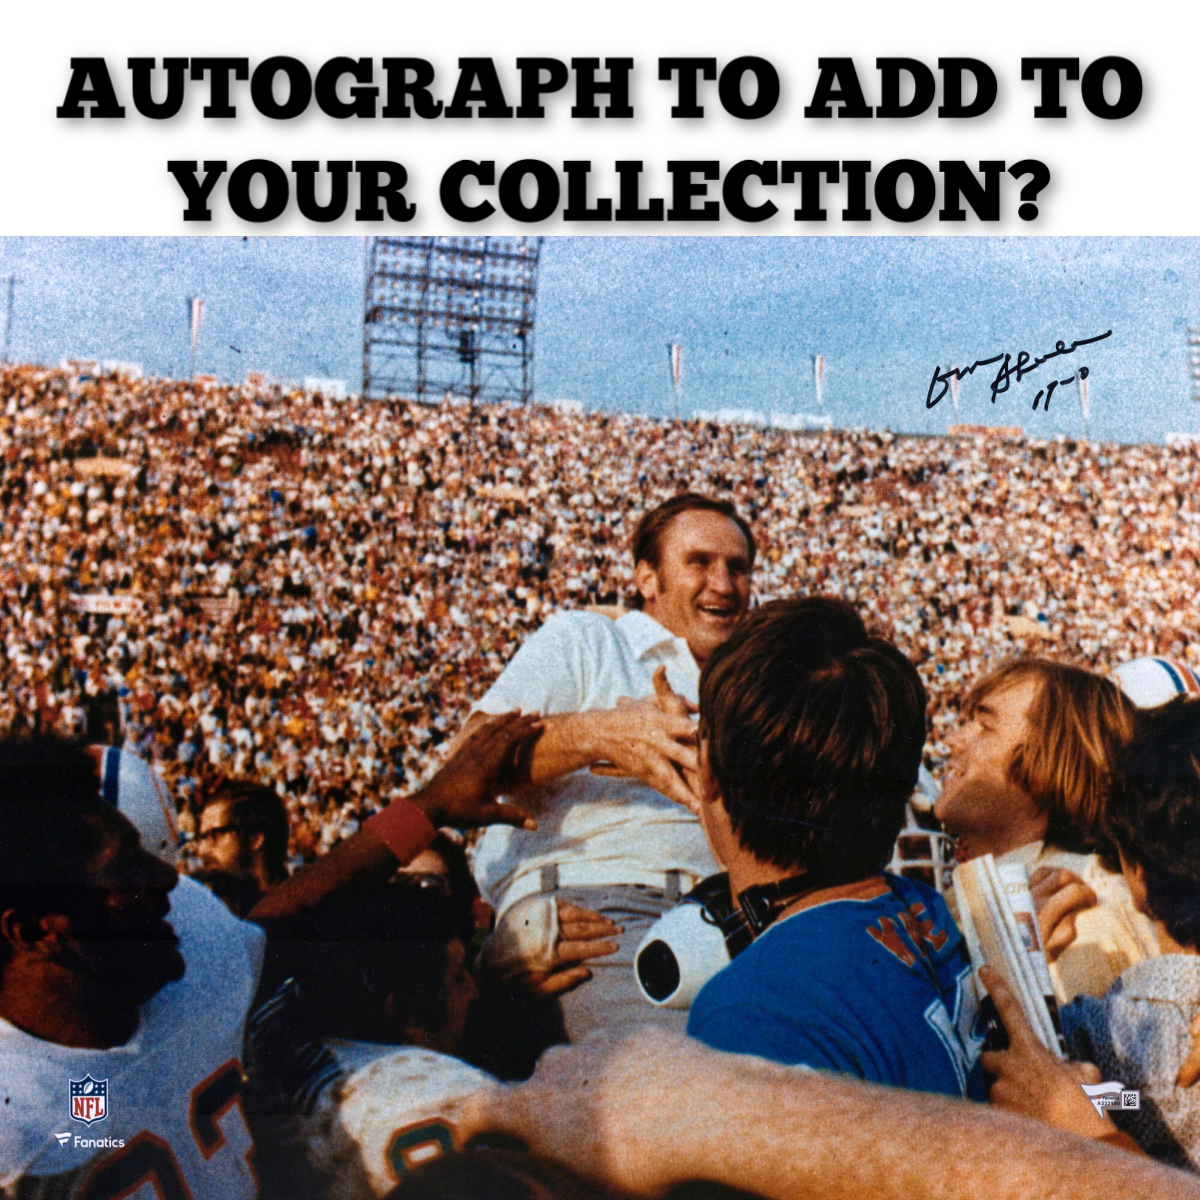 Don Shula Autograph - one to add to your collection?